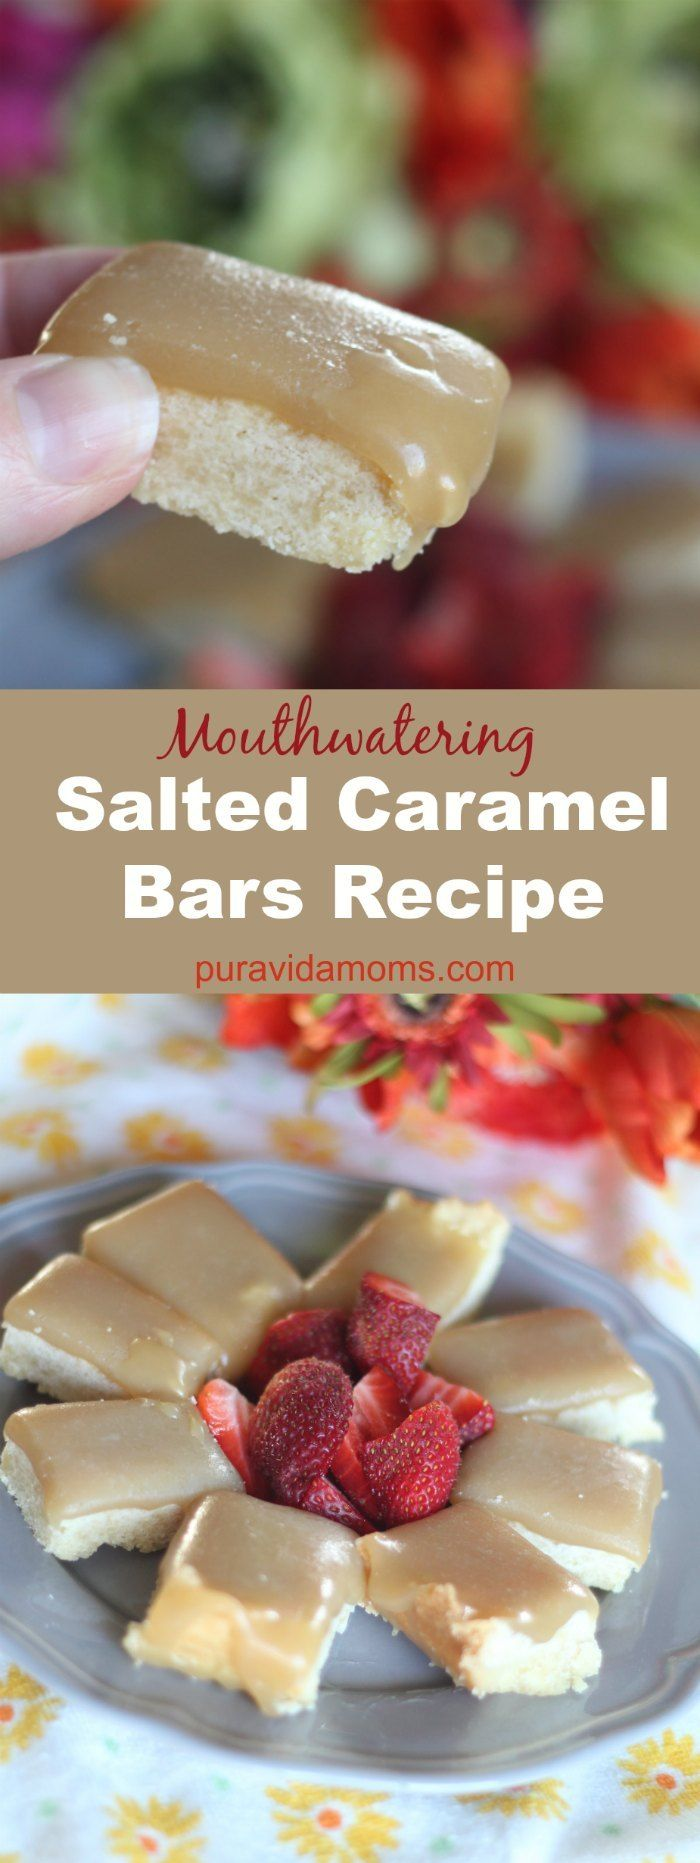 It's no secret that I love all things caramel. Especially salted caramel. So when a few years ago, one of my teaching partners gave me a huge piece of these salted caramel bars, I had to have the recipe. As I was making them for my daughter's preschool teacher's birthday, I realized that everyone should …